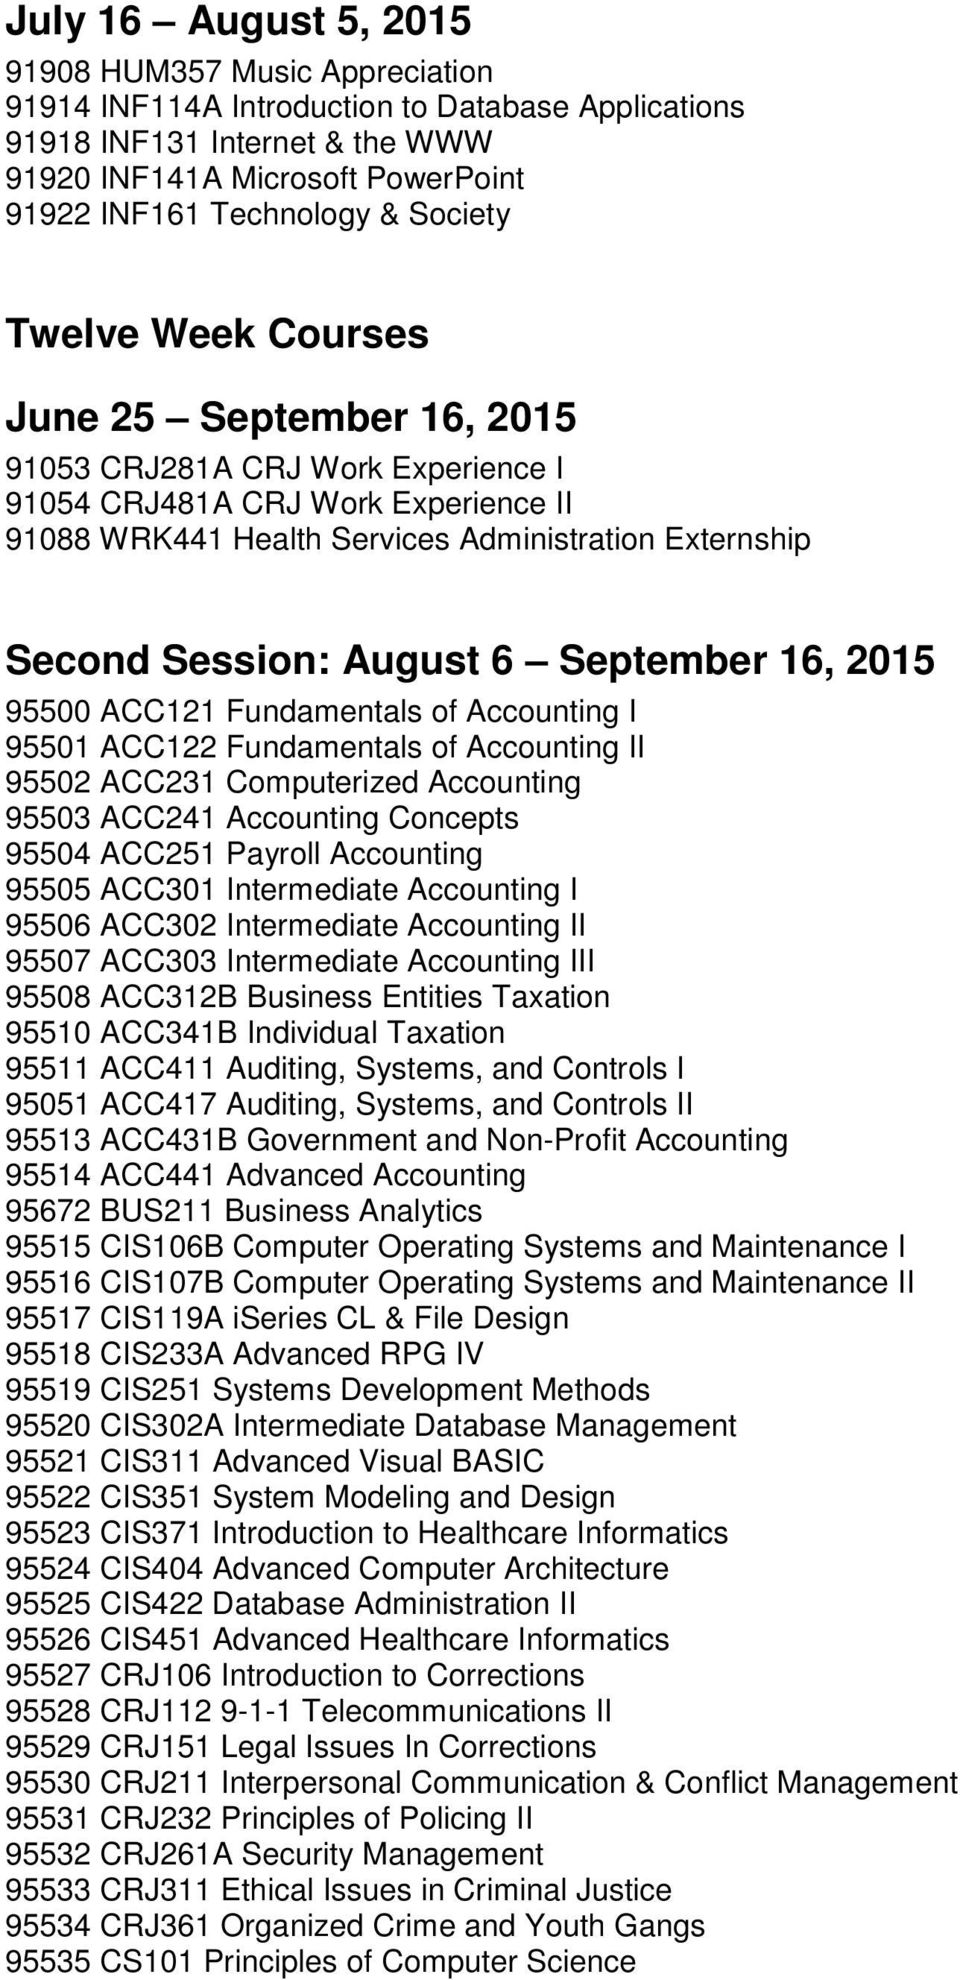 August 6 September 16, 2015 95500 ACC121 Fundamentals of Accounting I 95501 ACC122 Fundamentals of Accounting II 95502 ACC231 Computerized Accounting 95503 ACC241 Accounting Concepts 95504 ACC251